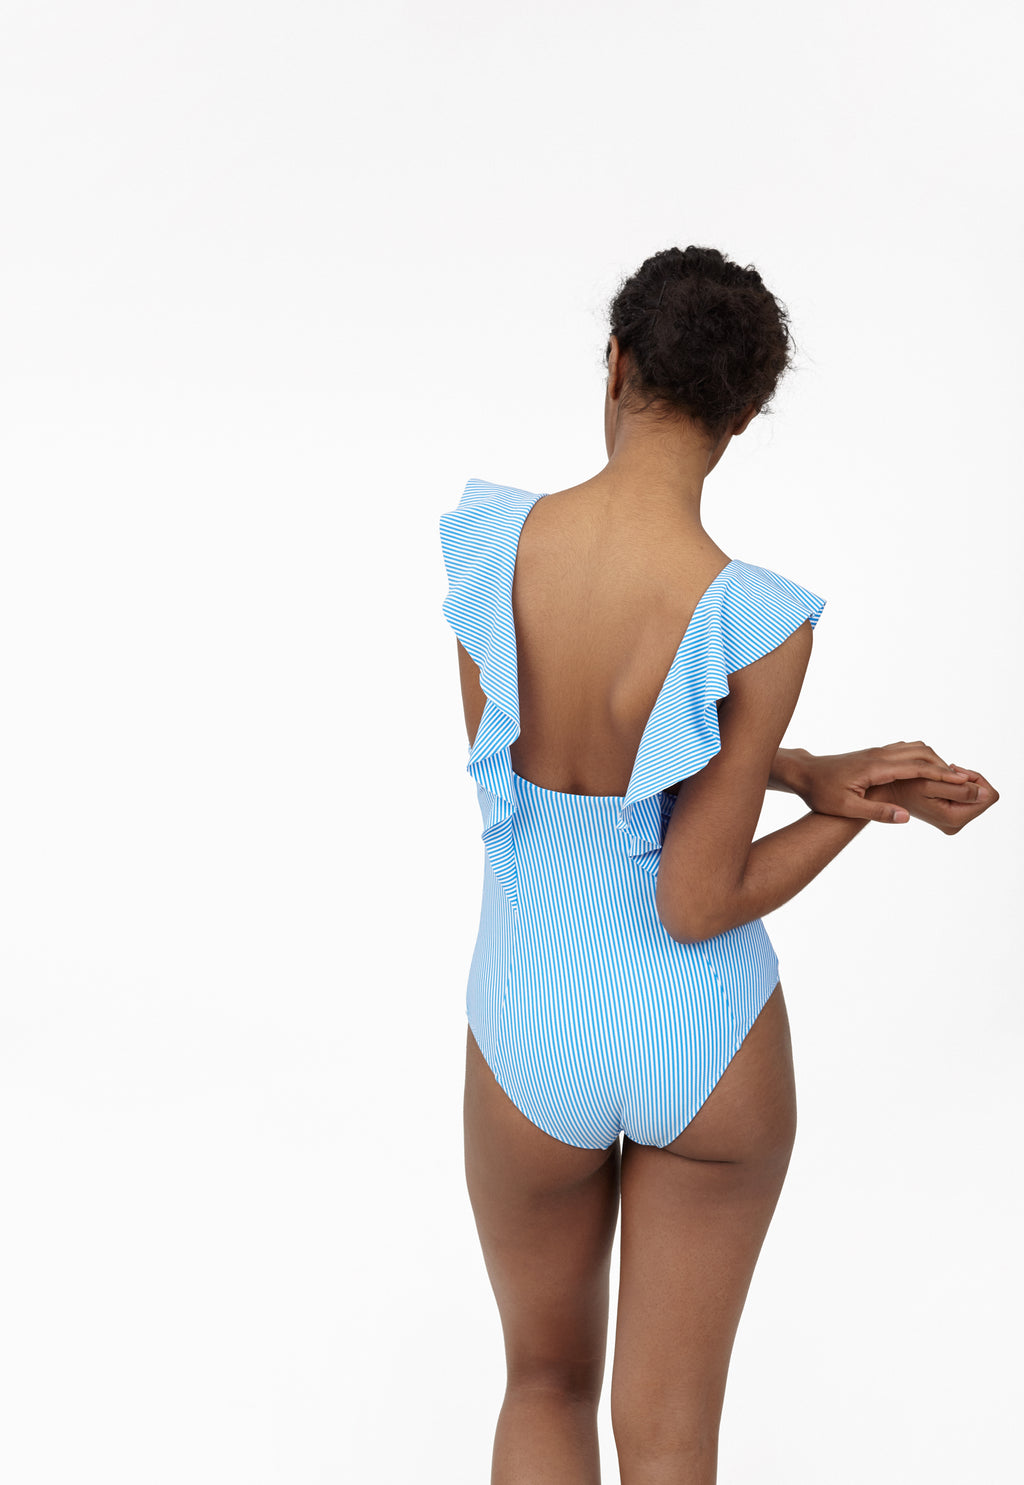 6 Shore Road Sea Voyage One Piece Blue Striped Swimsuit in XS, S, M, L - Summer 2018 Collection